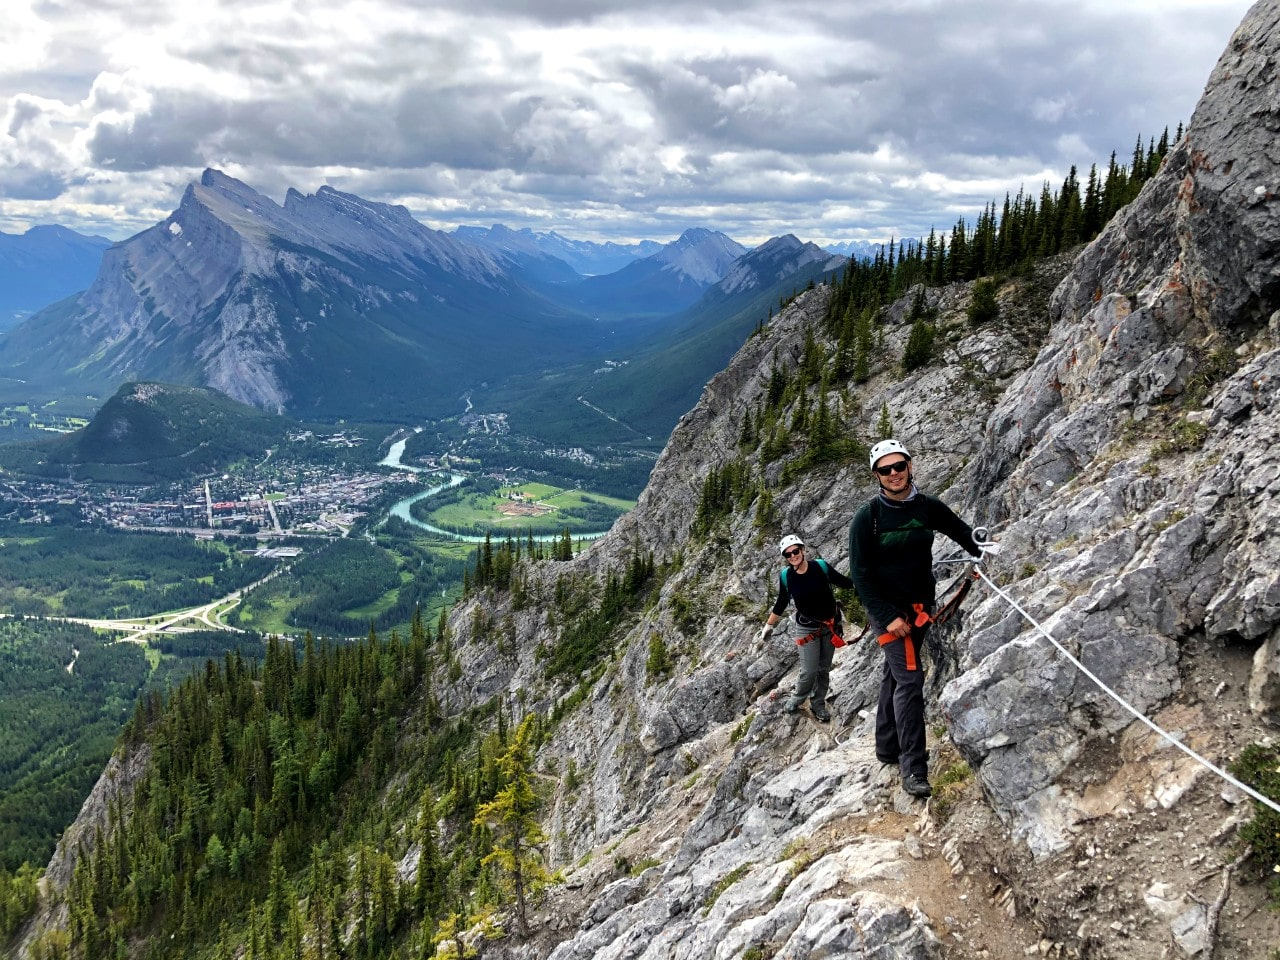 JR and Gemma on Via Ferrata course attached to rock with views of Banff and Mount Rundle behind